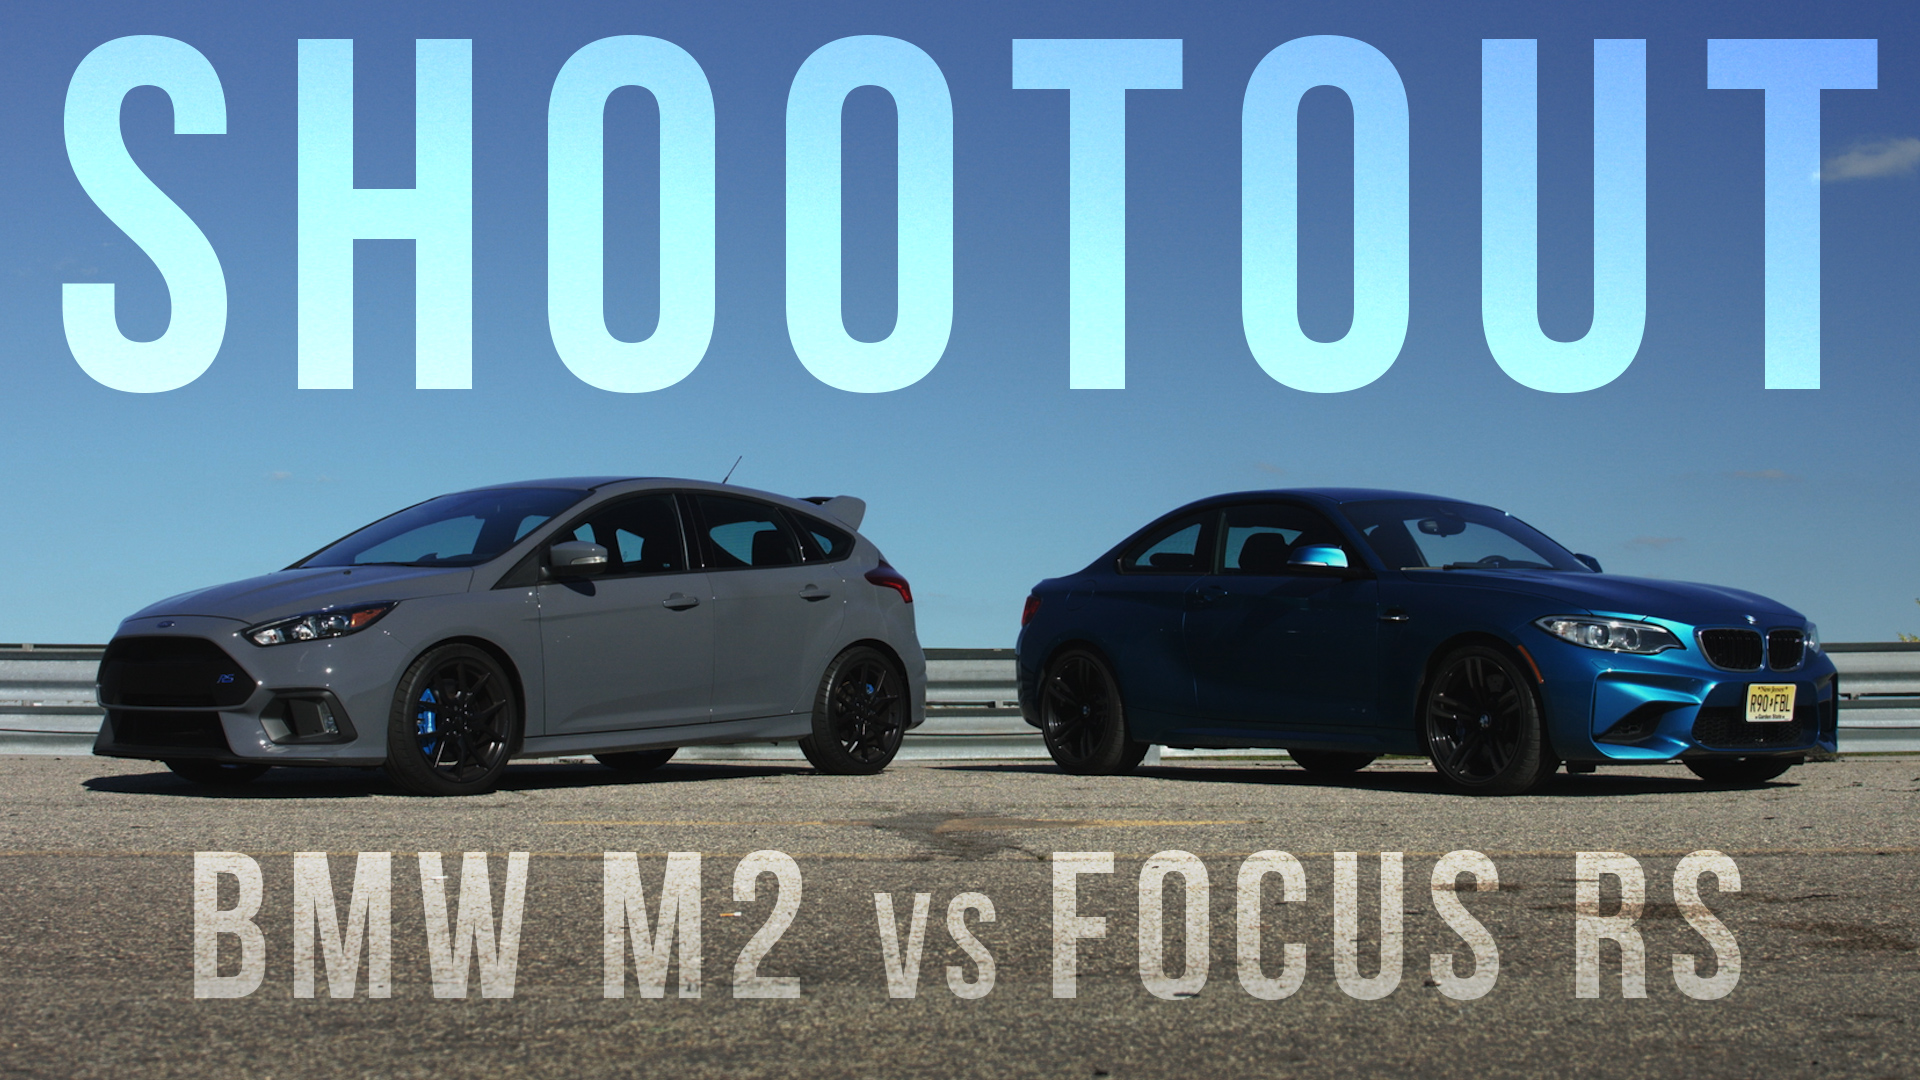 Video: Shootout: BMW M2 vs. Ford Focus RS